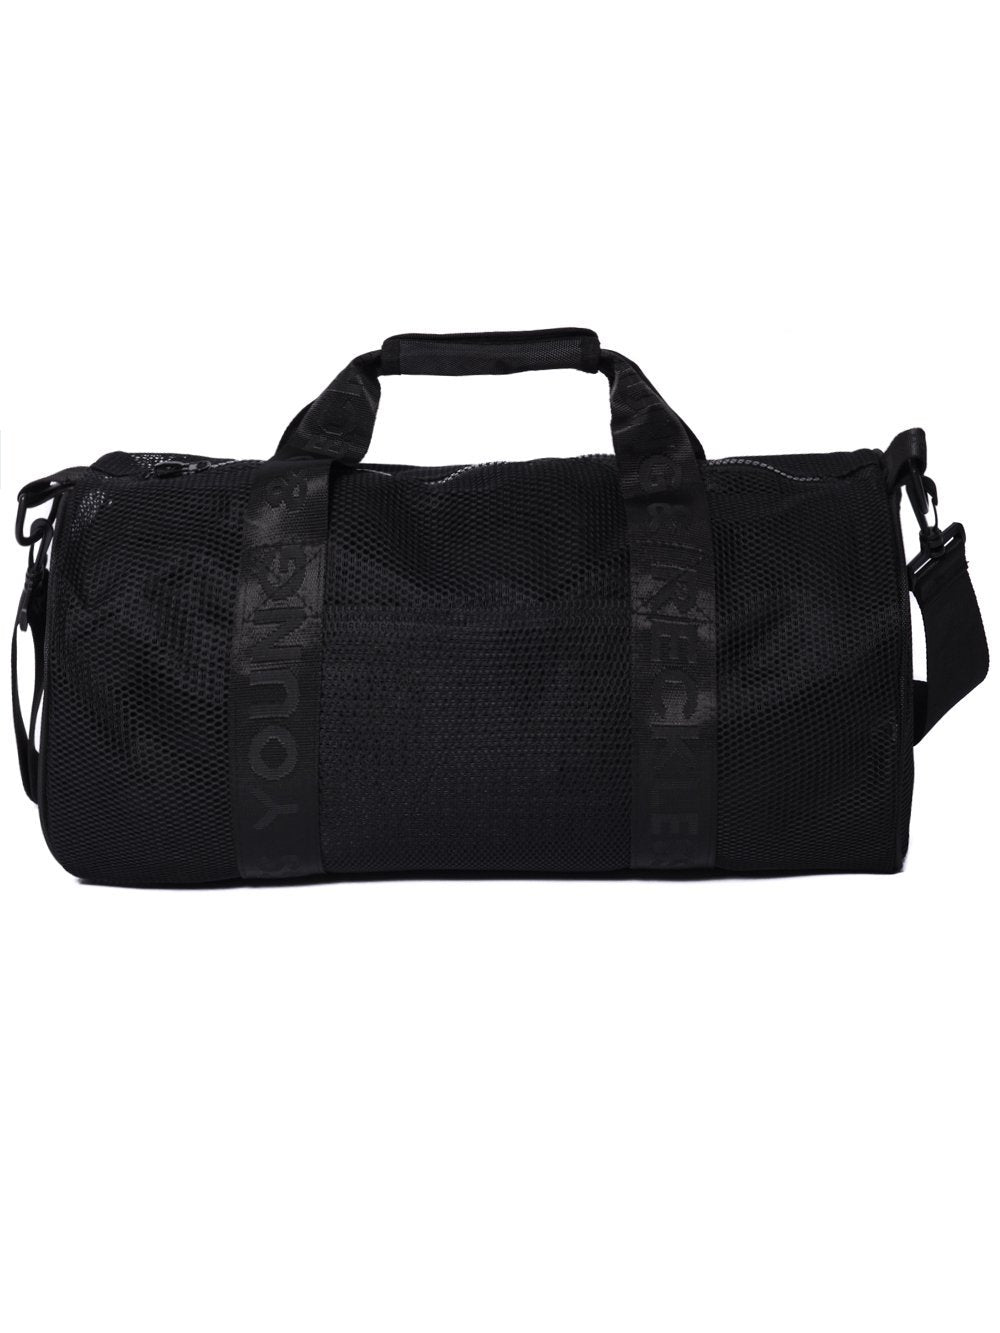 Reckless Girls Womens - Accessories - Bags   Packs Stacy Mesh Duffle Bag-  Black ...